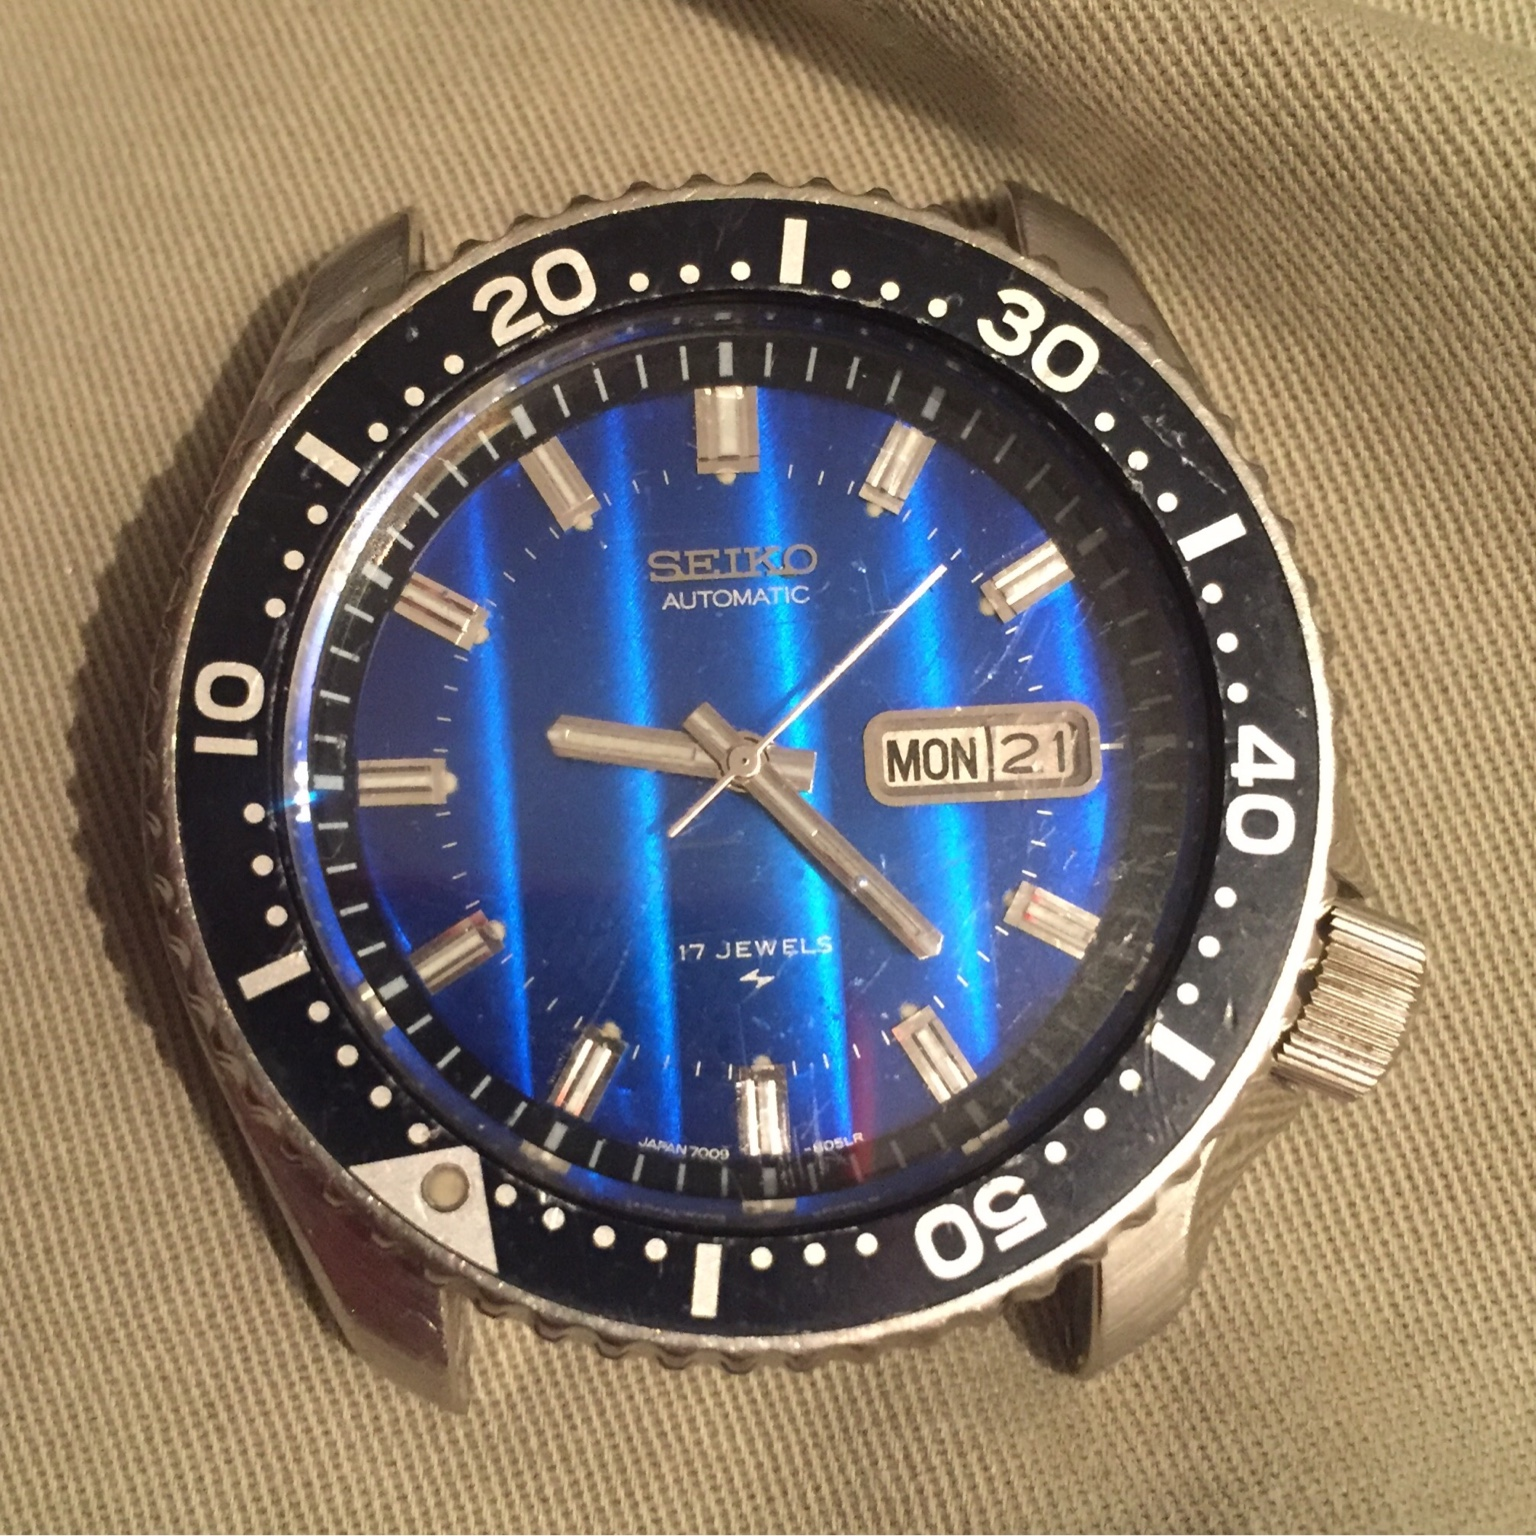 Skx007 mod  7009 dial and movement  | Wrist Sushi - A